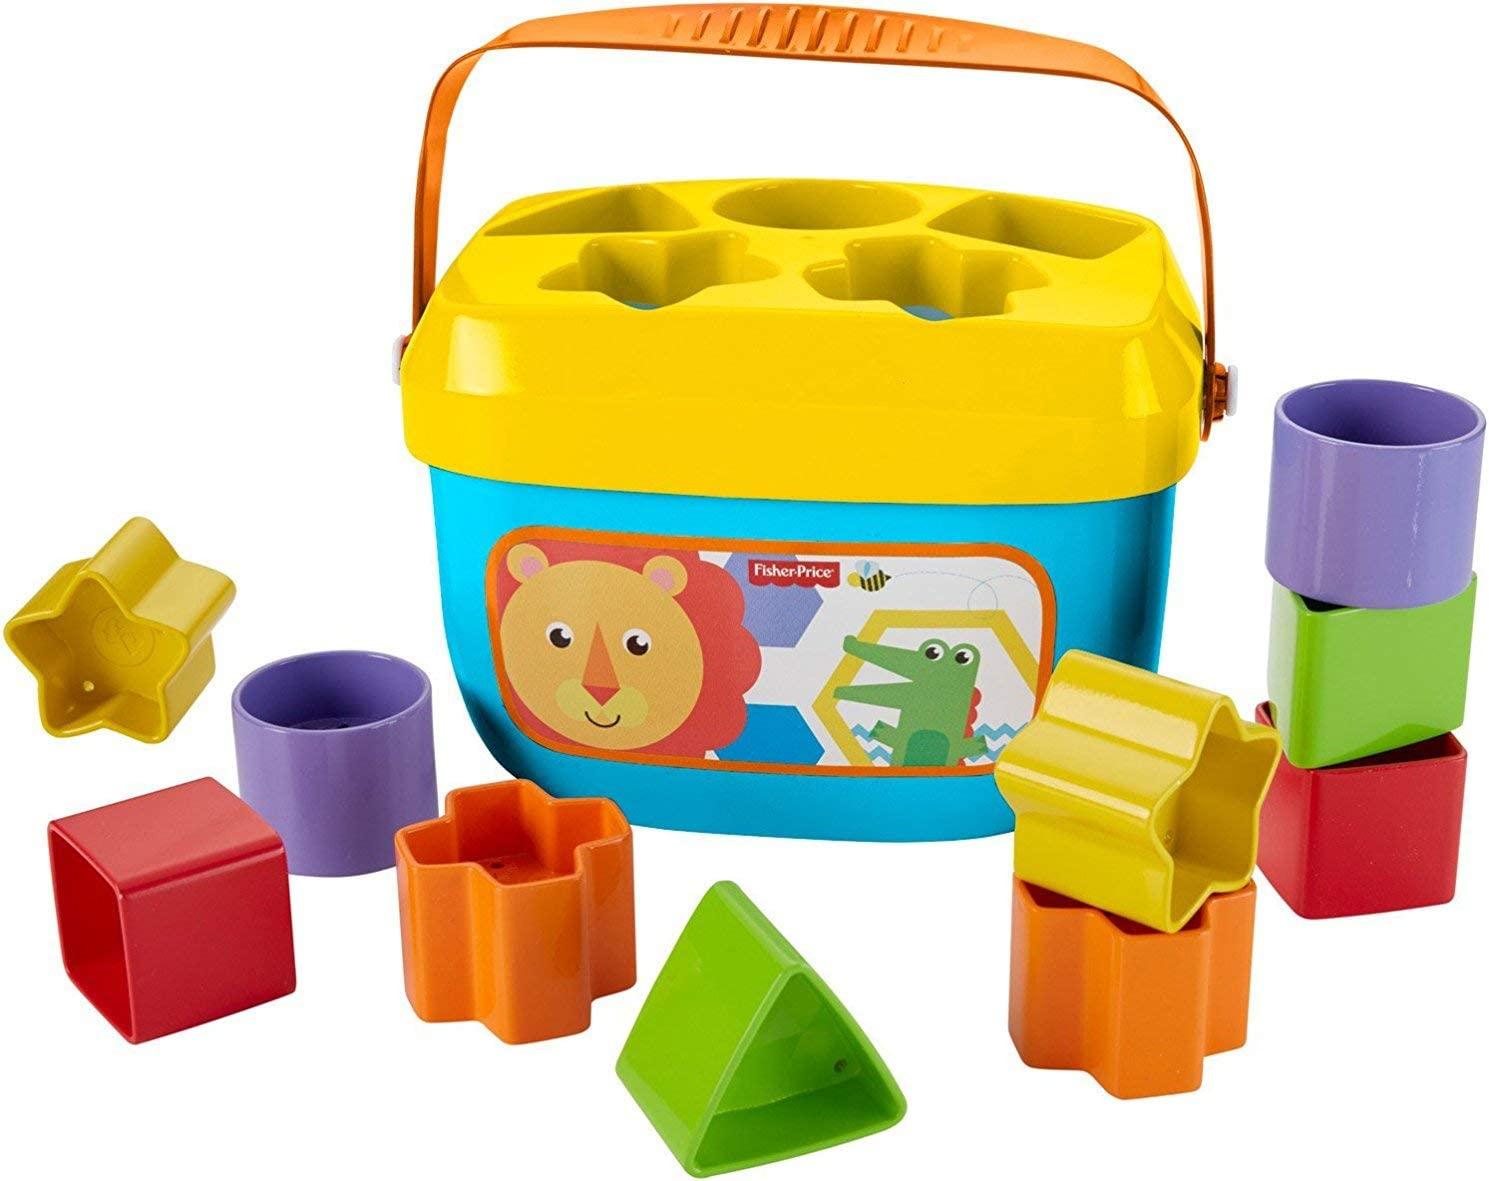 Top 11 Best Learning Toys For Babies (2020 Reviews & Buying Guide) 6